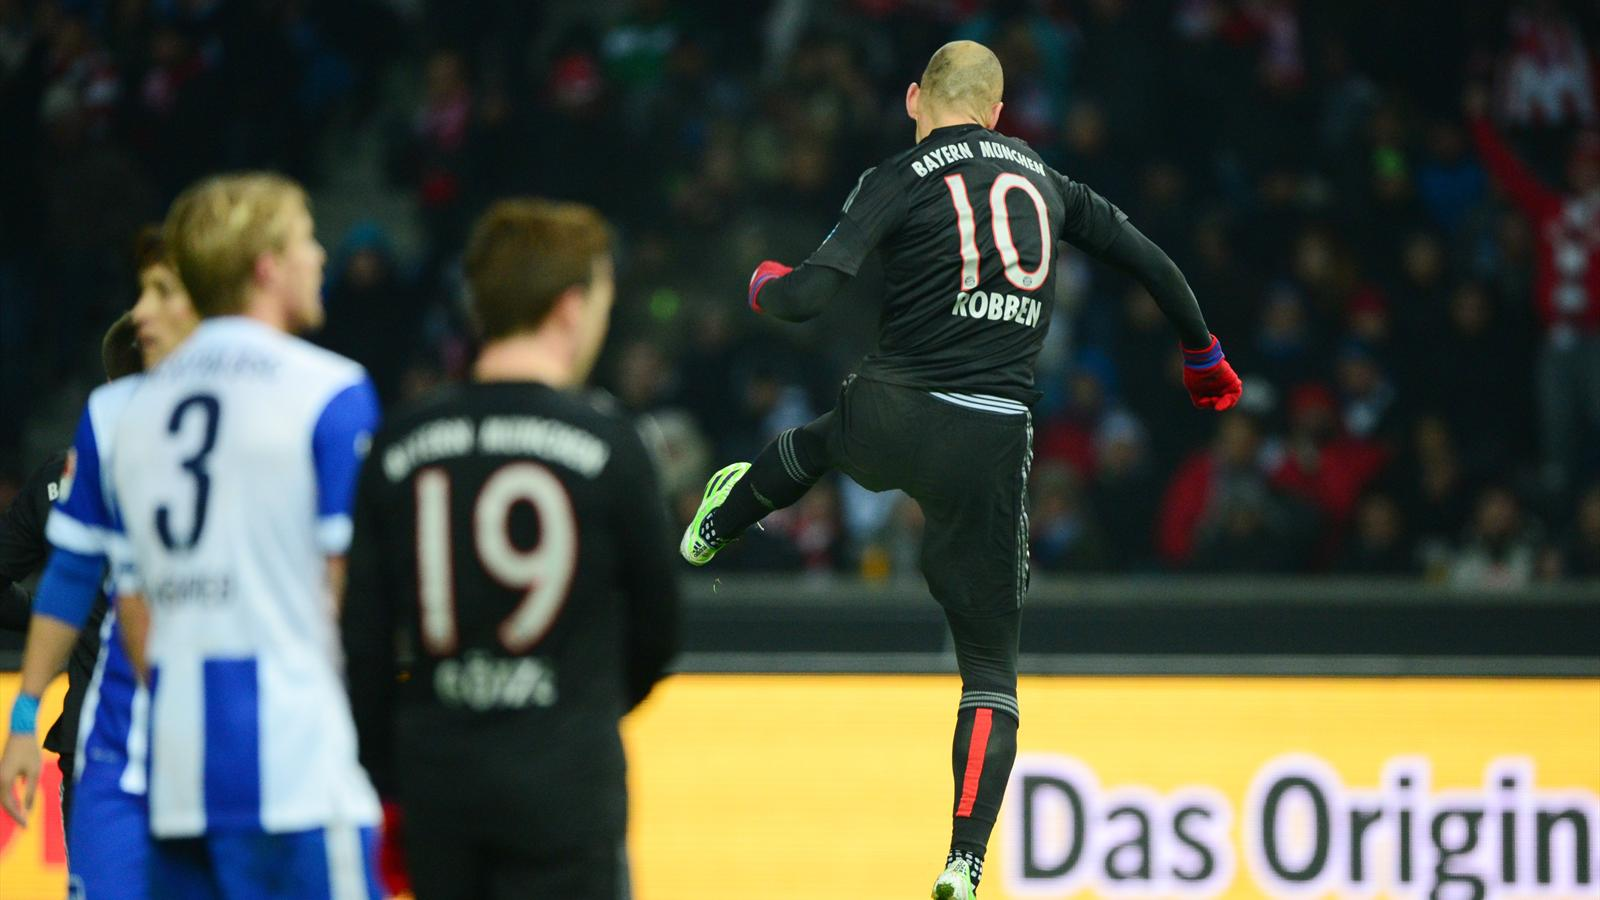 Arjen Robben scores as Bayern Munich grind out win in Berlin - Bundesliga 2014-2015 - Football ...